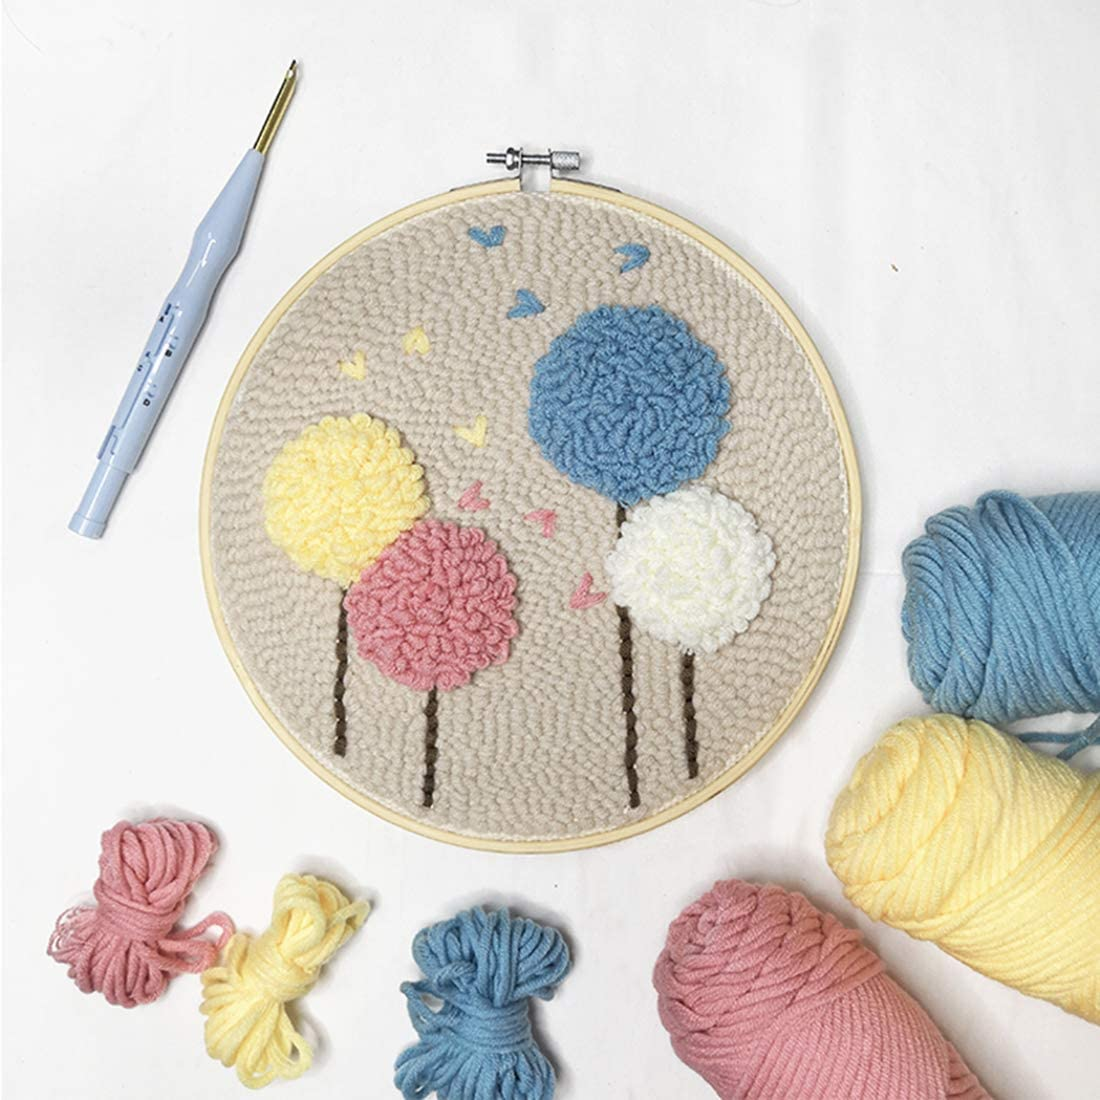 DIY Latch Hook Kits Knitting Embroidery Kit Needlework Crafts Punch Needle Starter Kit for Kids and Adults Yamix Rug Hooking Rug Crafts